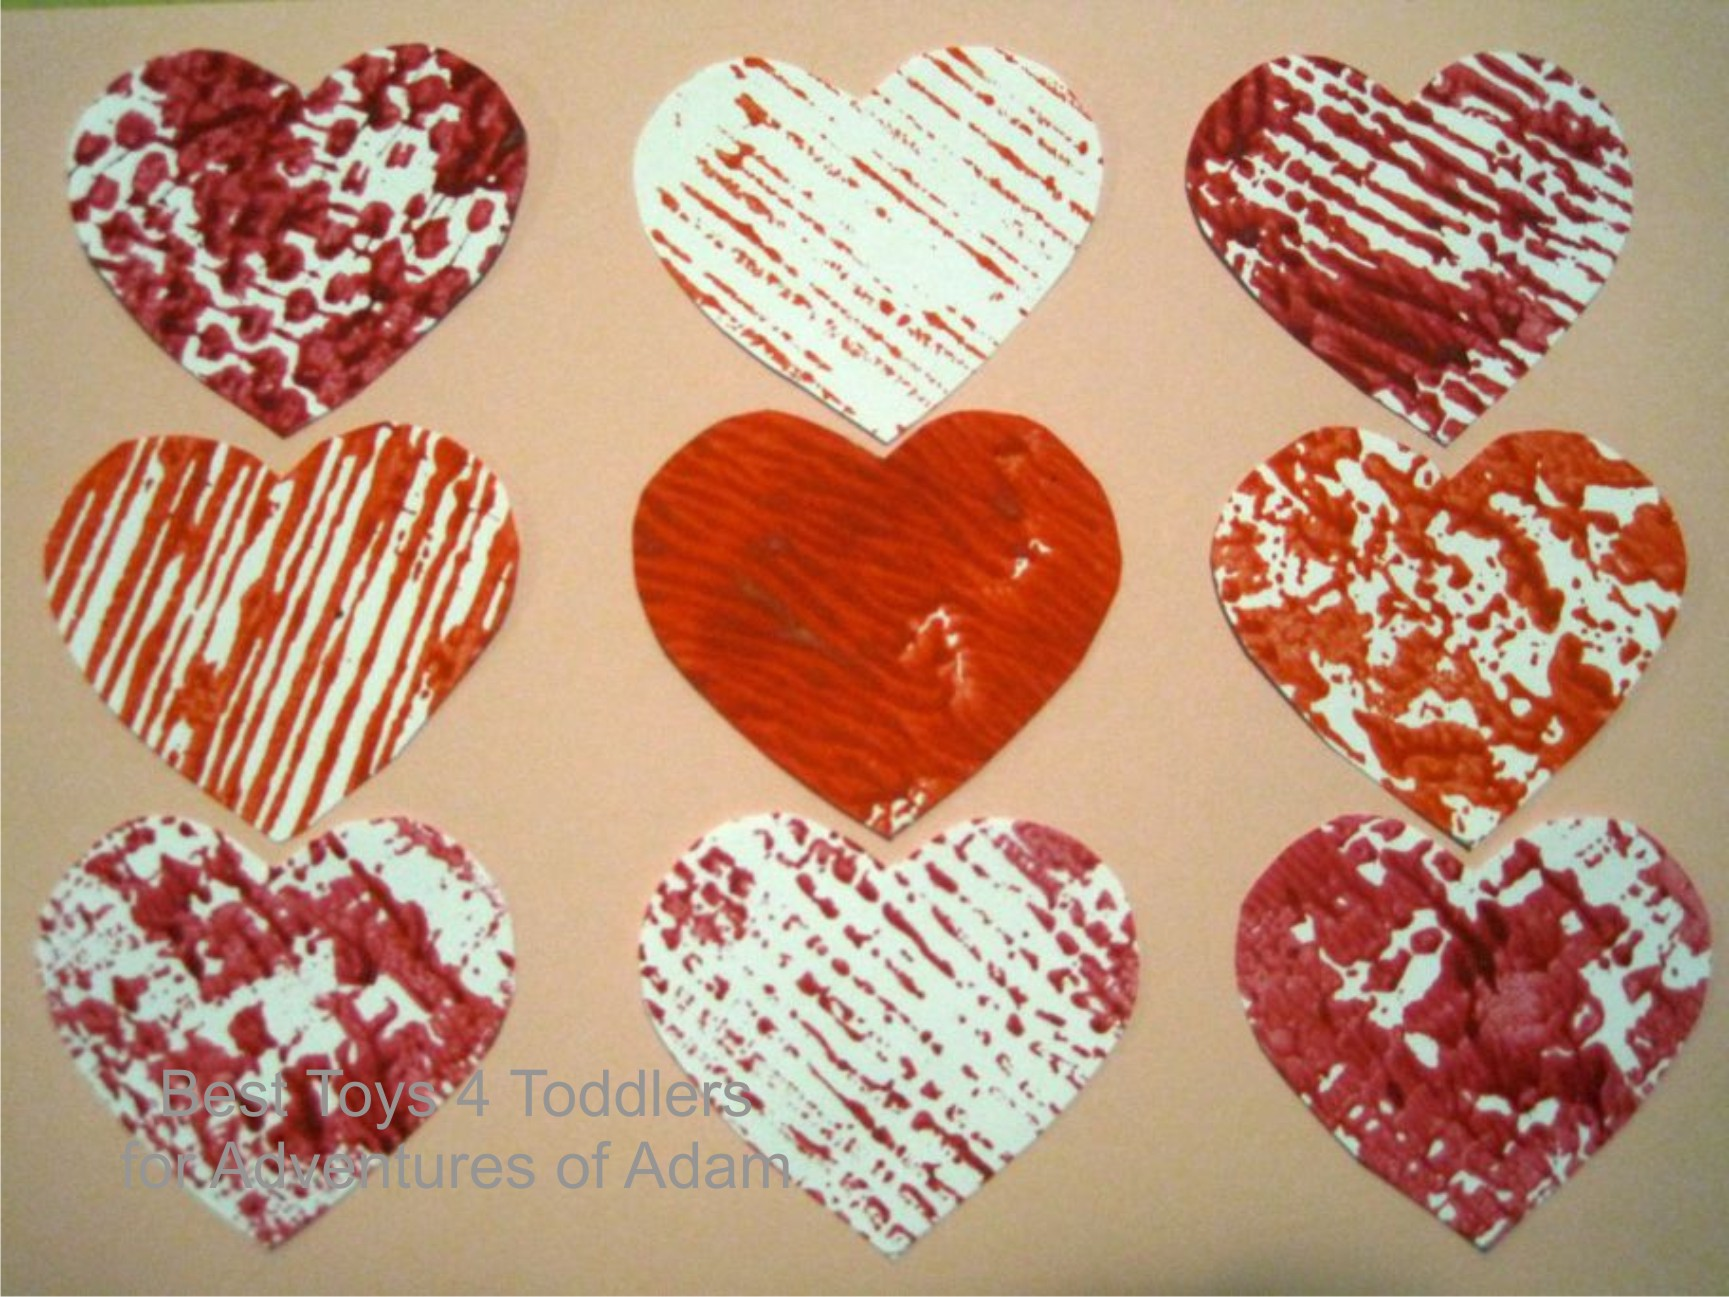 Adventures of Adam printed hearts using wallpaper